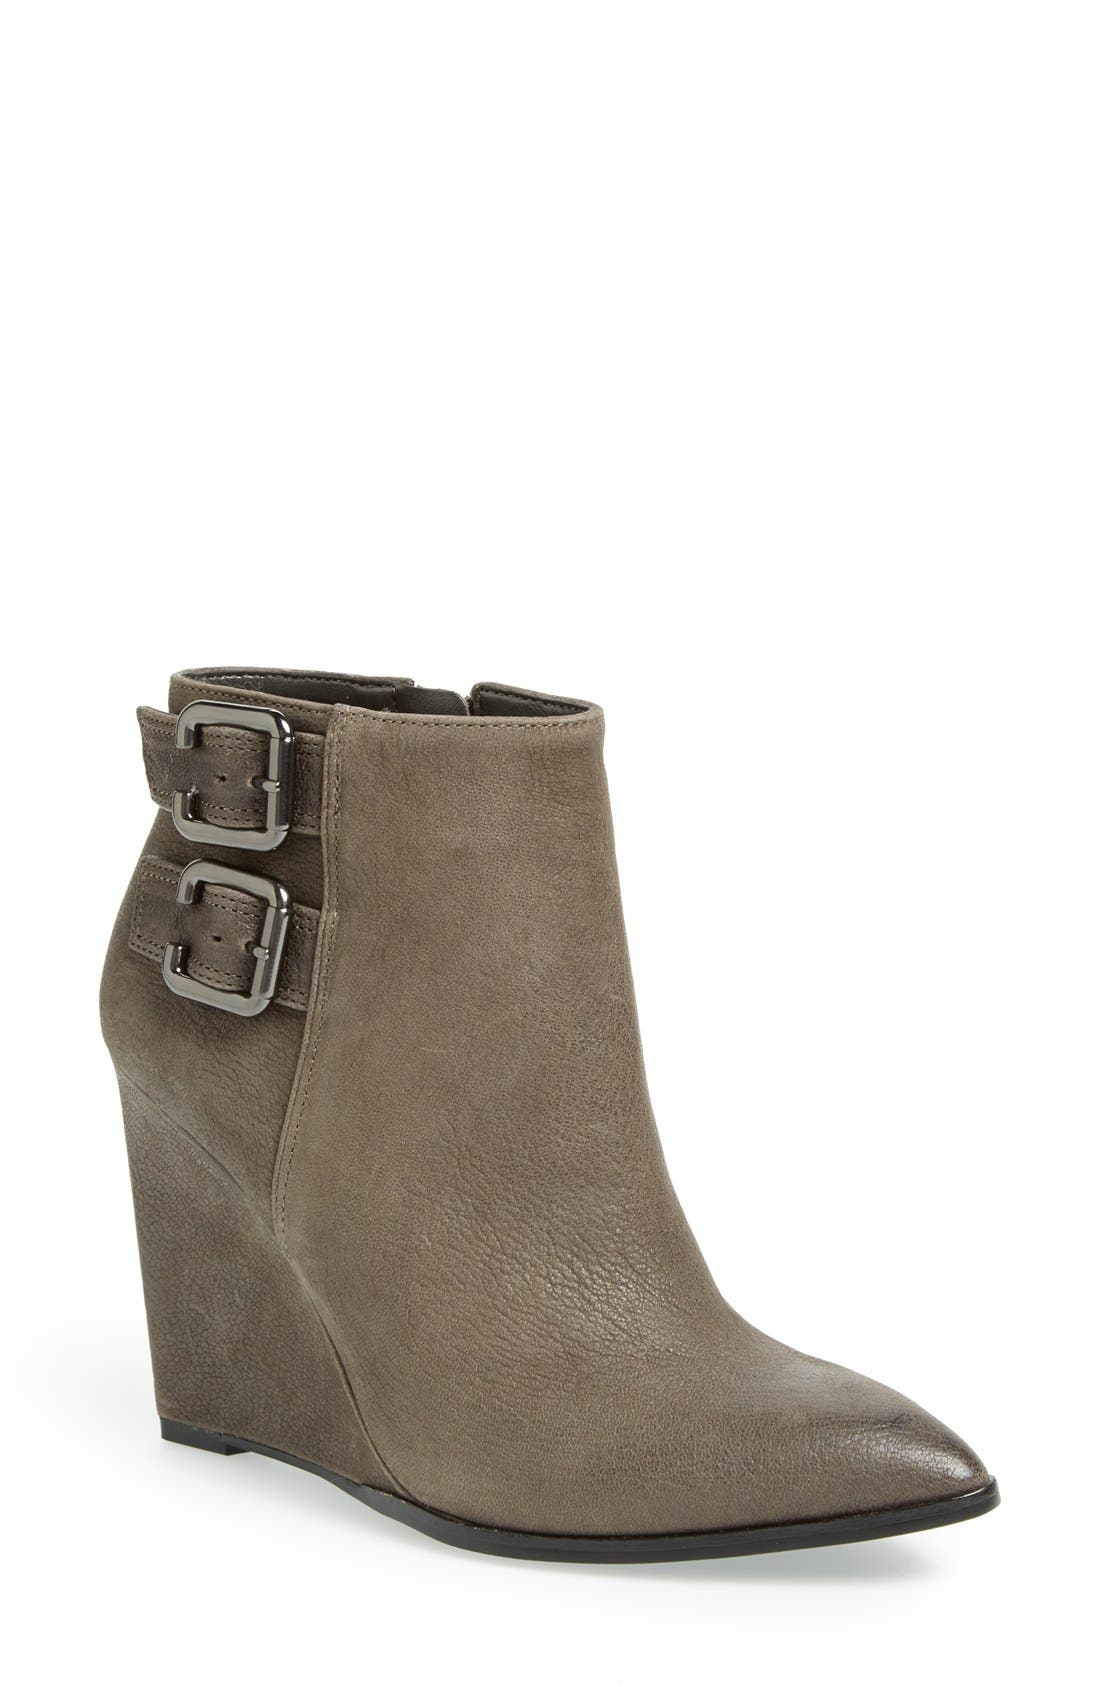 Alternate Image 1 Selected - Vince Camuto 'Karmel' Boot (Women)